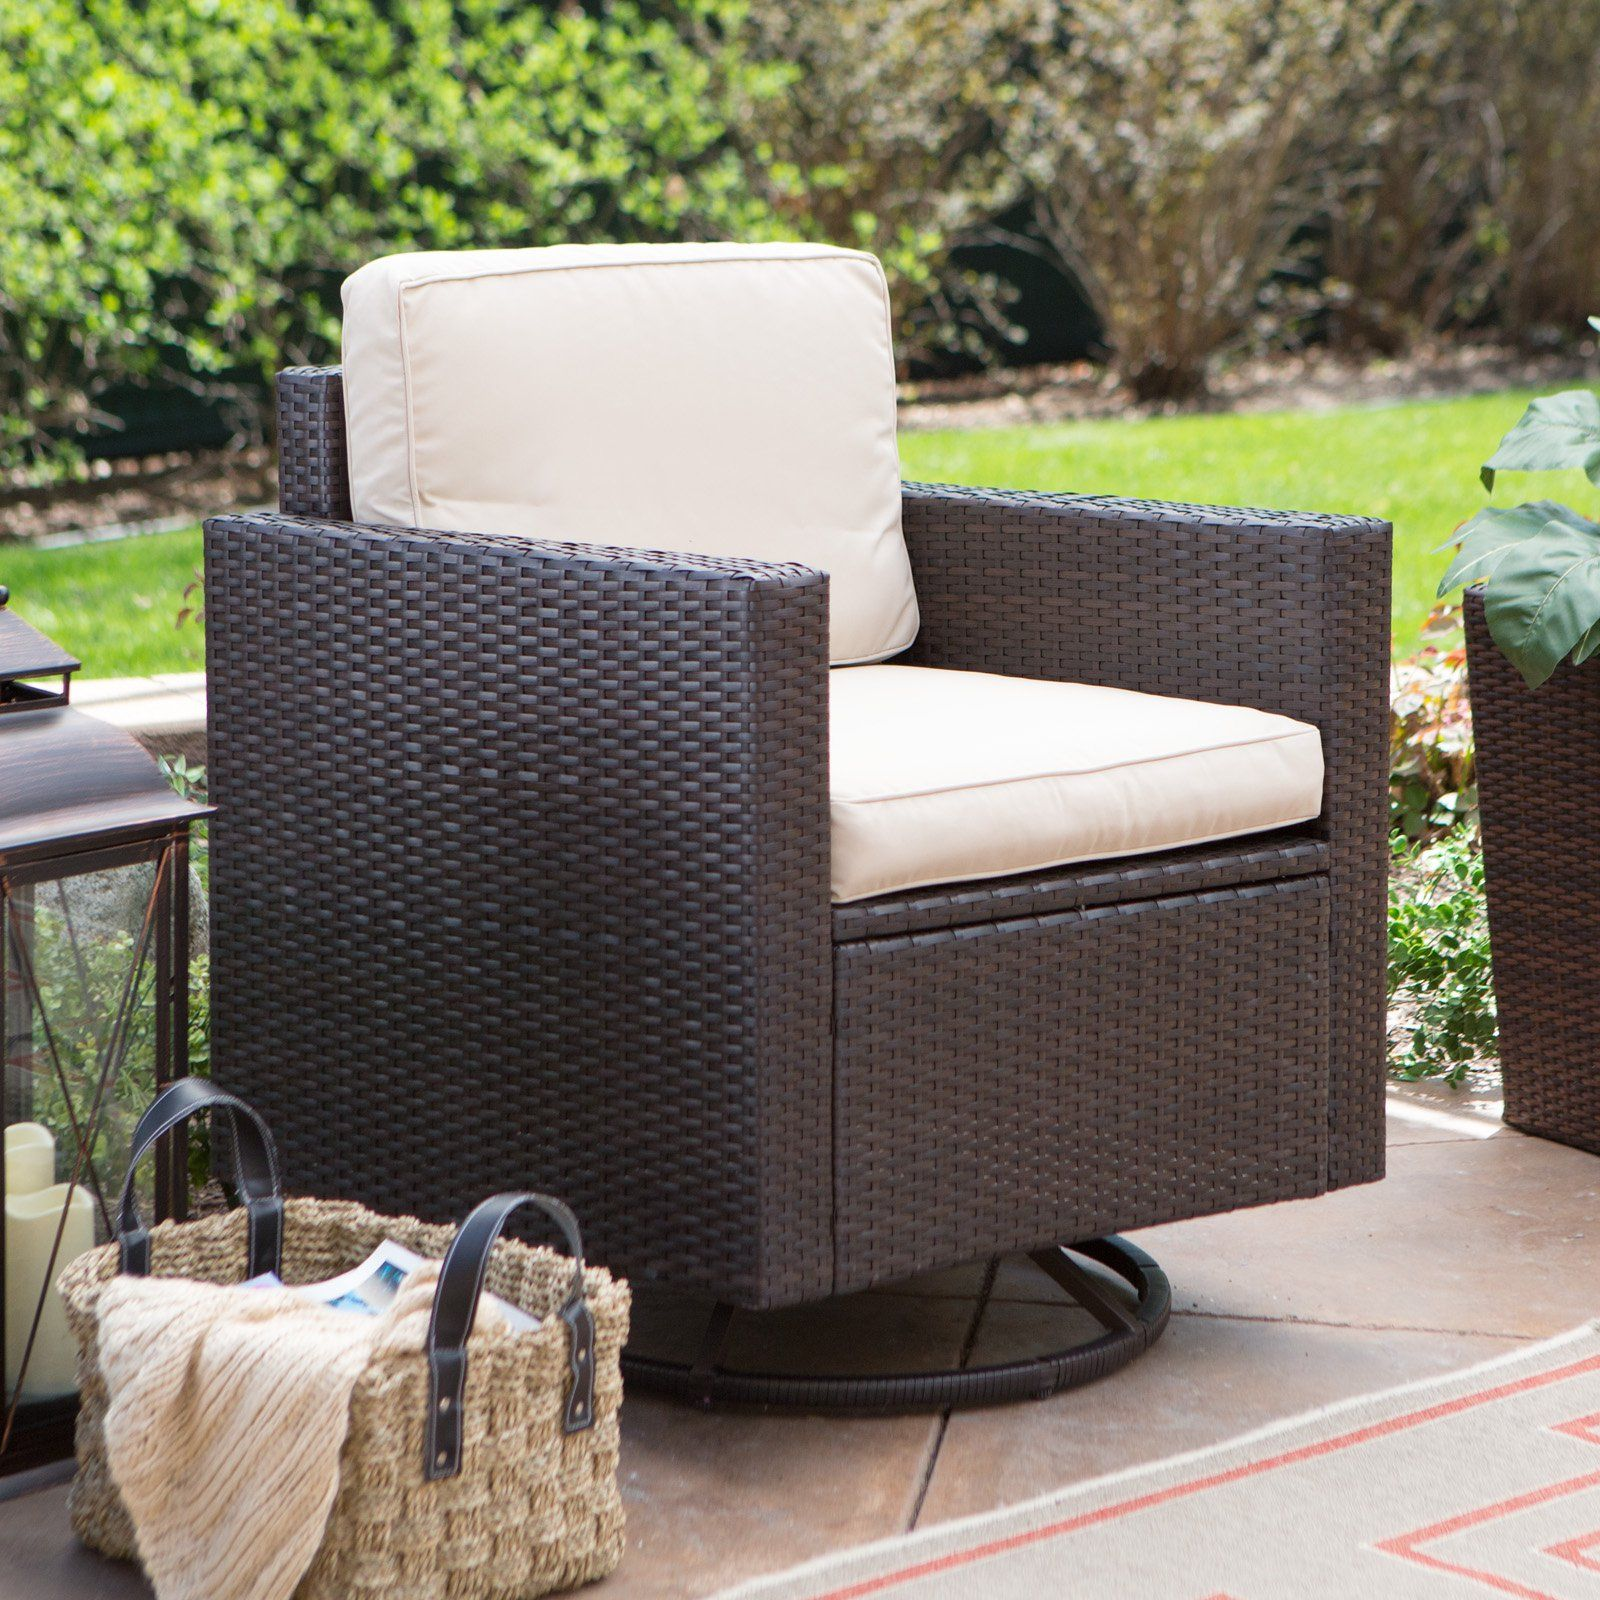 Coral Coast Berea Wicker Outdoor Wicker Swivel Chair With Cushions    CO7125BR SA